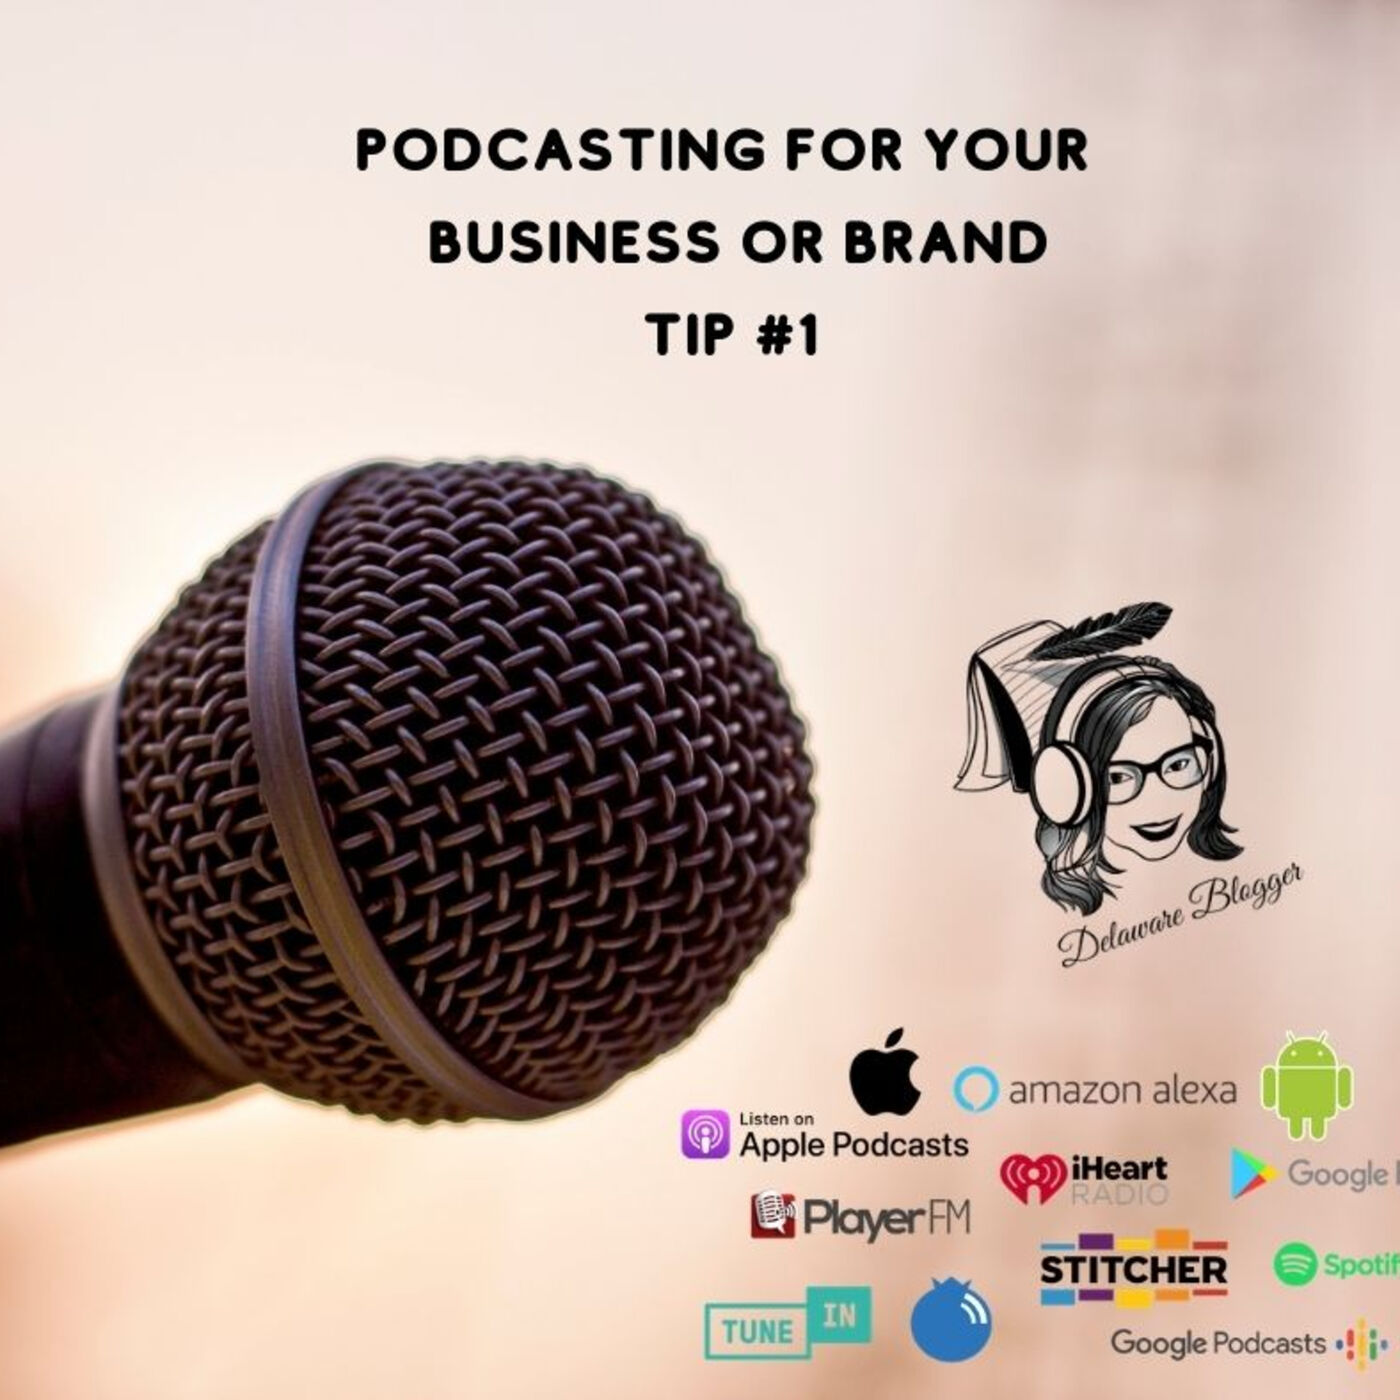 Podcasting for Your Business or Brand Tips #1 - Eps. #239